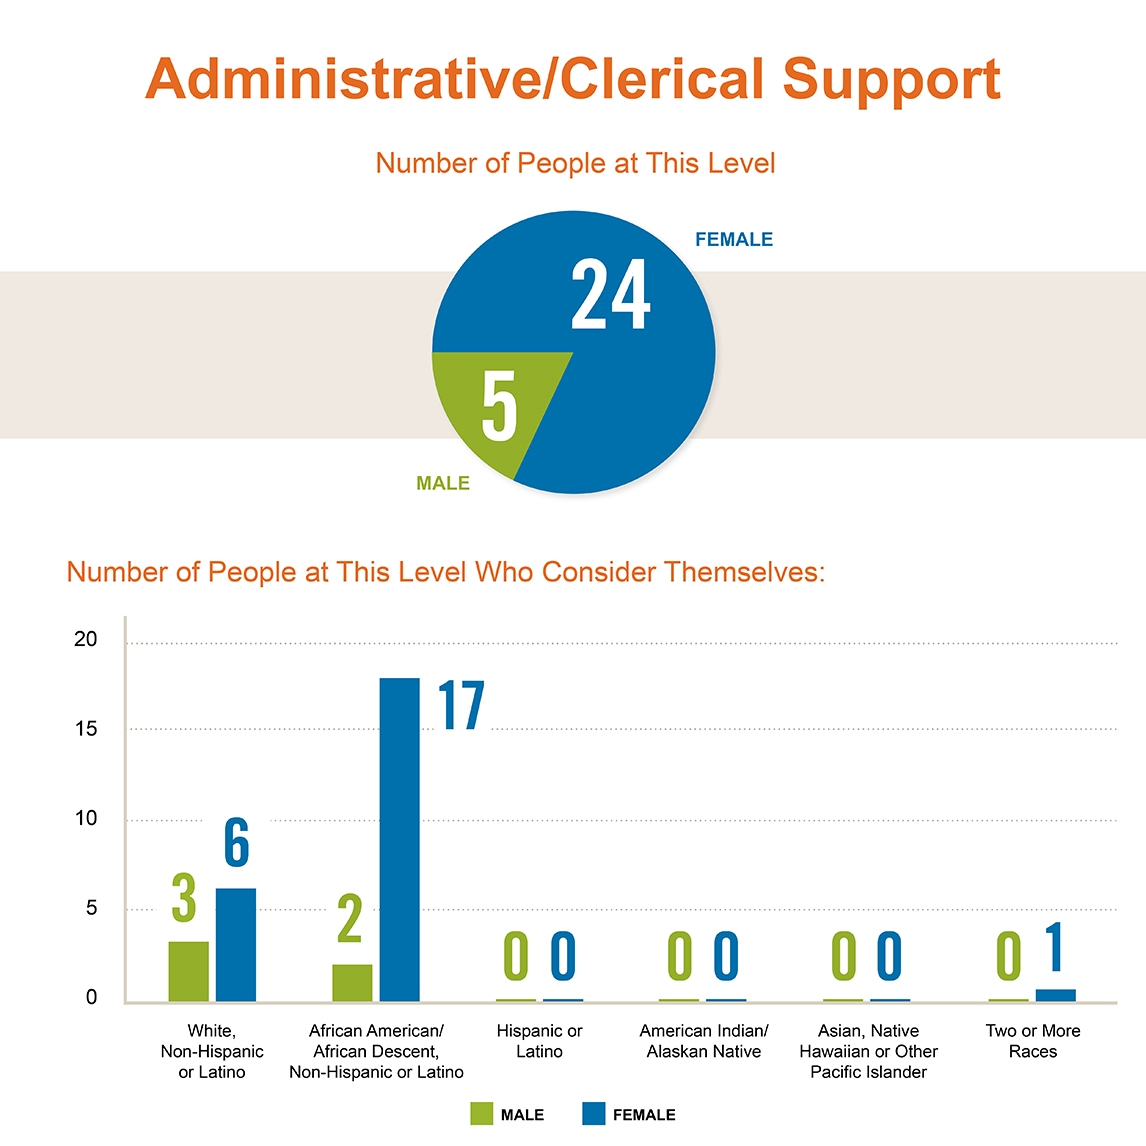 Diversity of Casey's Administrative/Clerical Support Staff